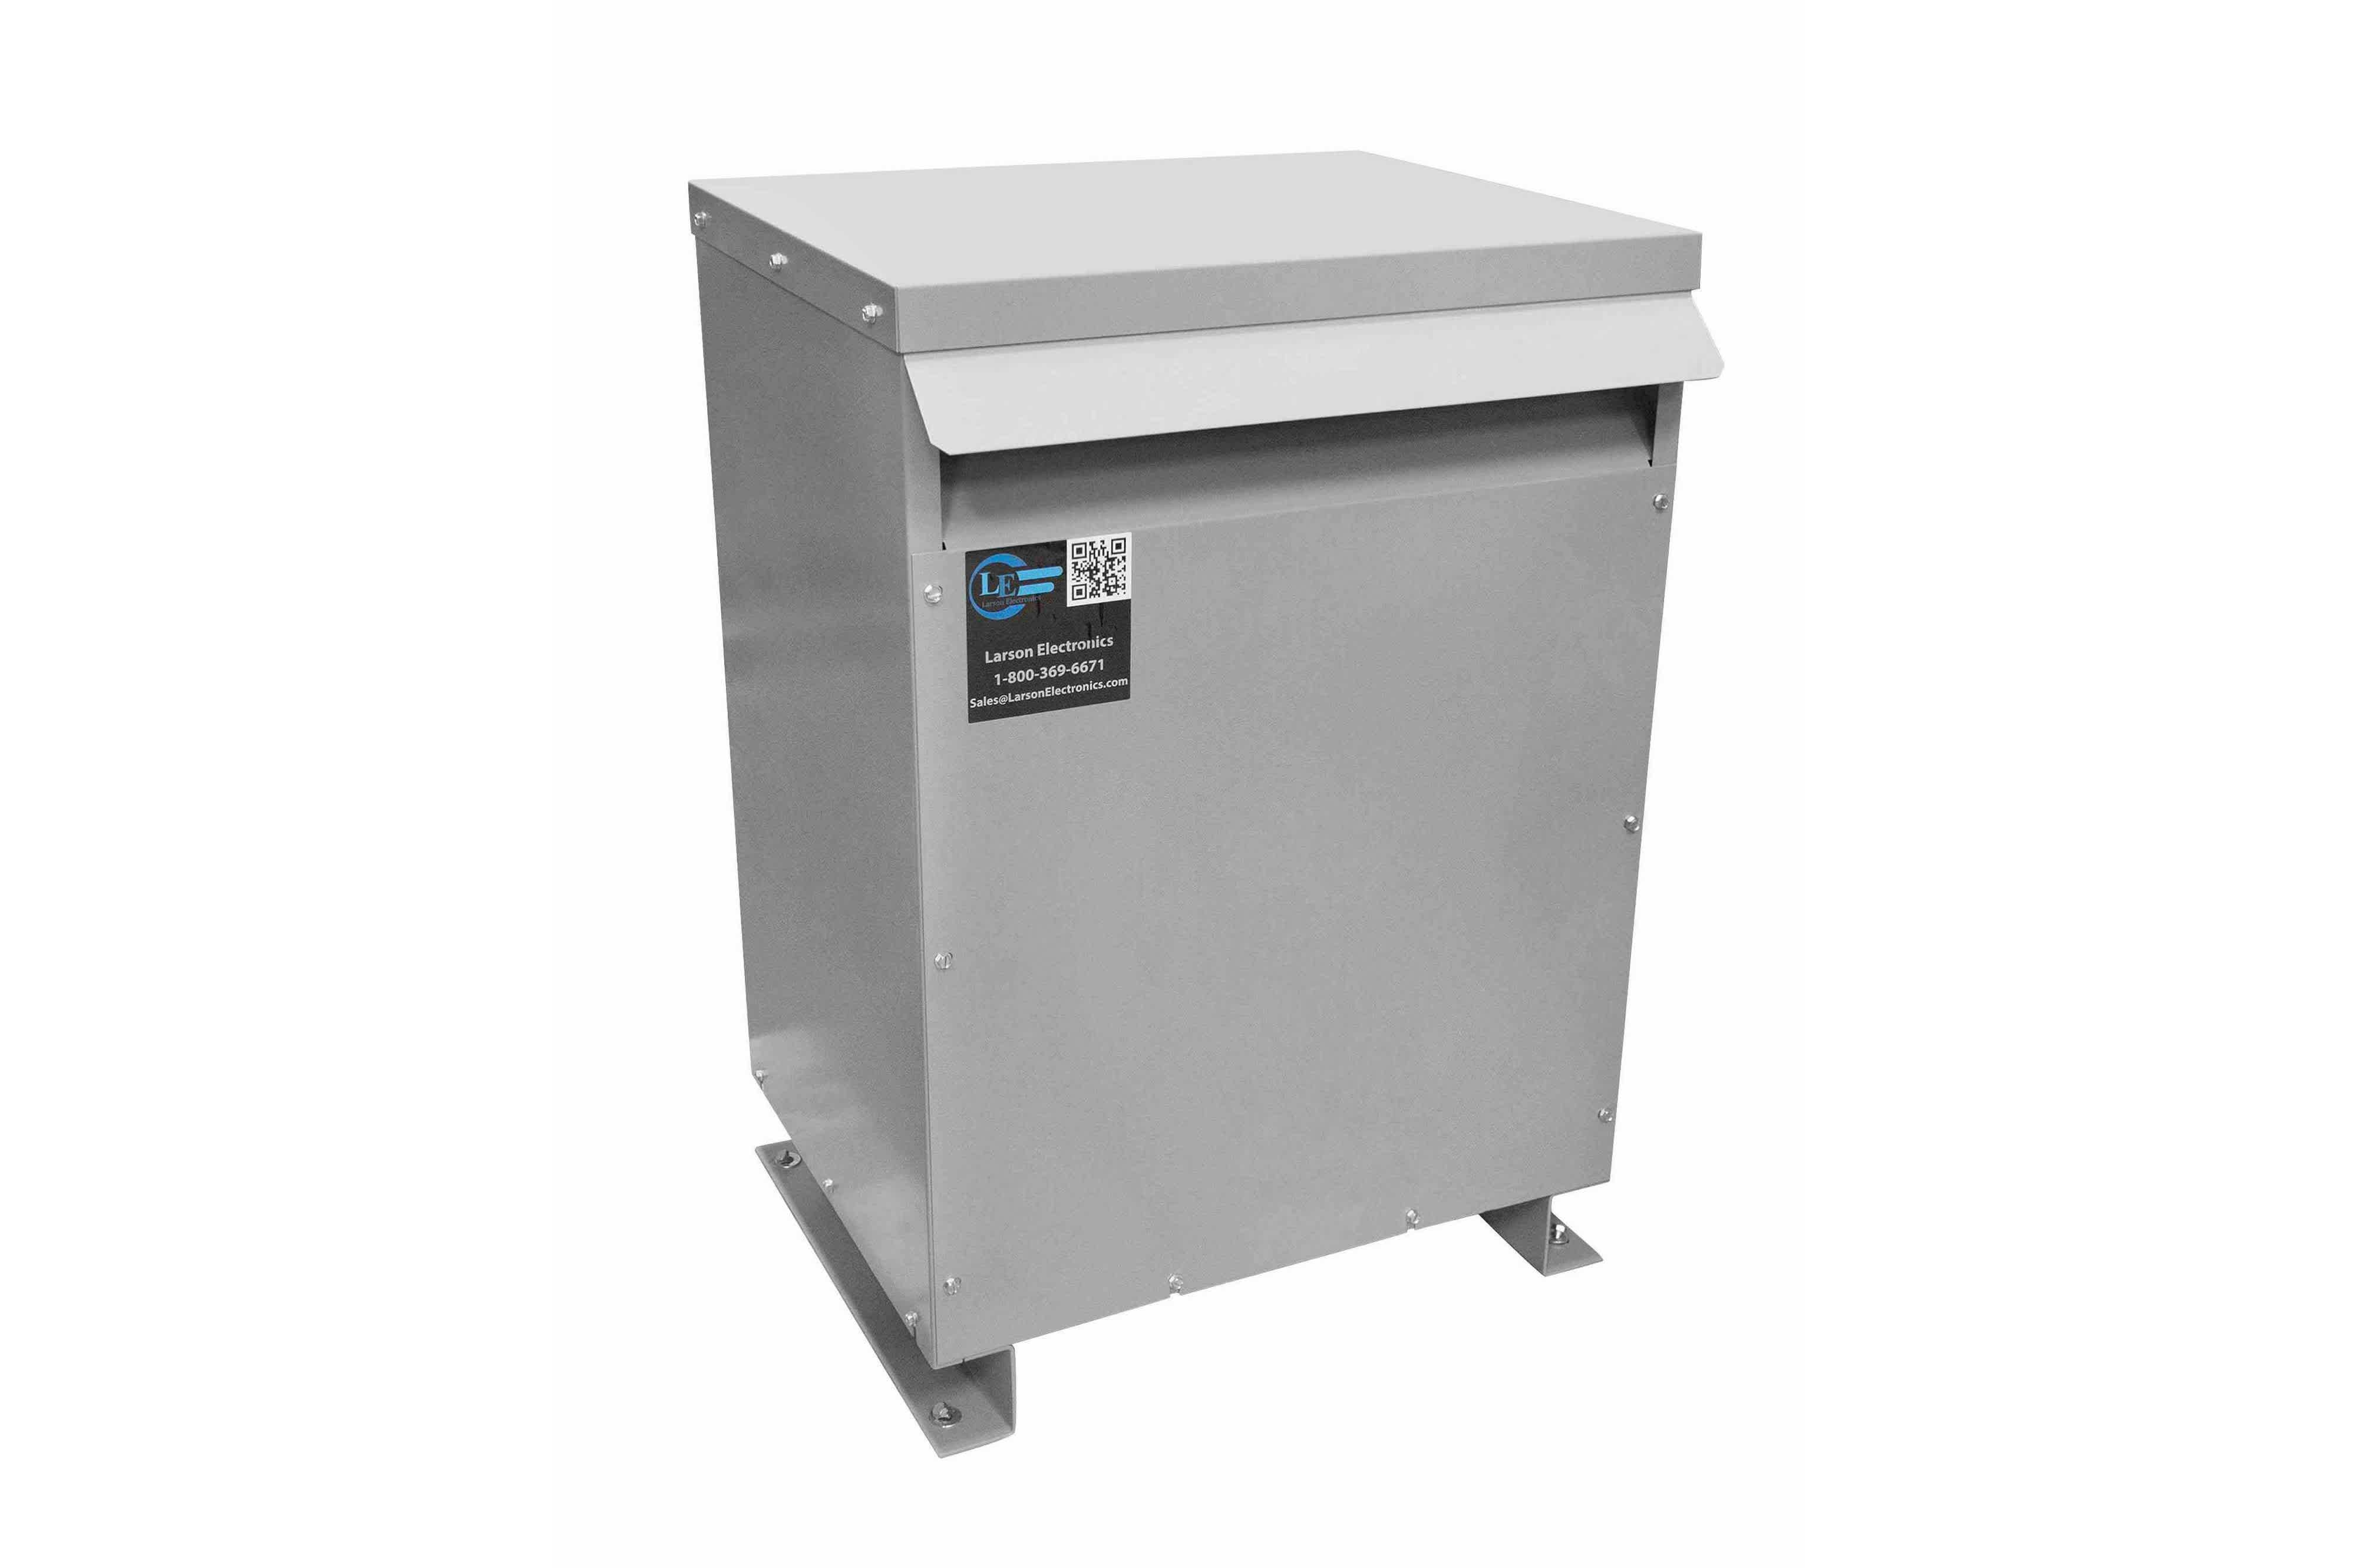 225 kVA 3PH Isolation Transformer, 400V Delta Primary, 240 Delta Secondary, N3R, Ventilated, 60 Hz